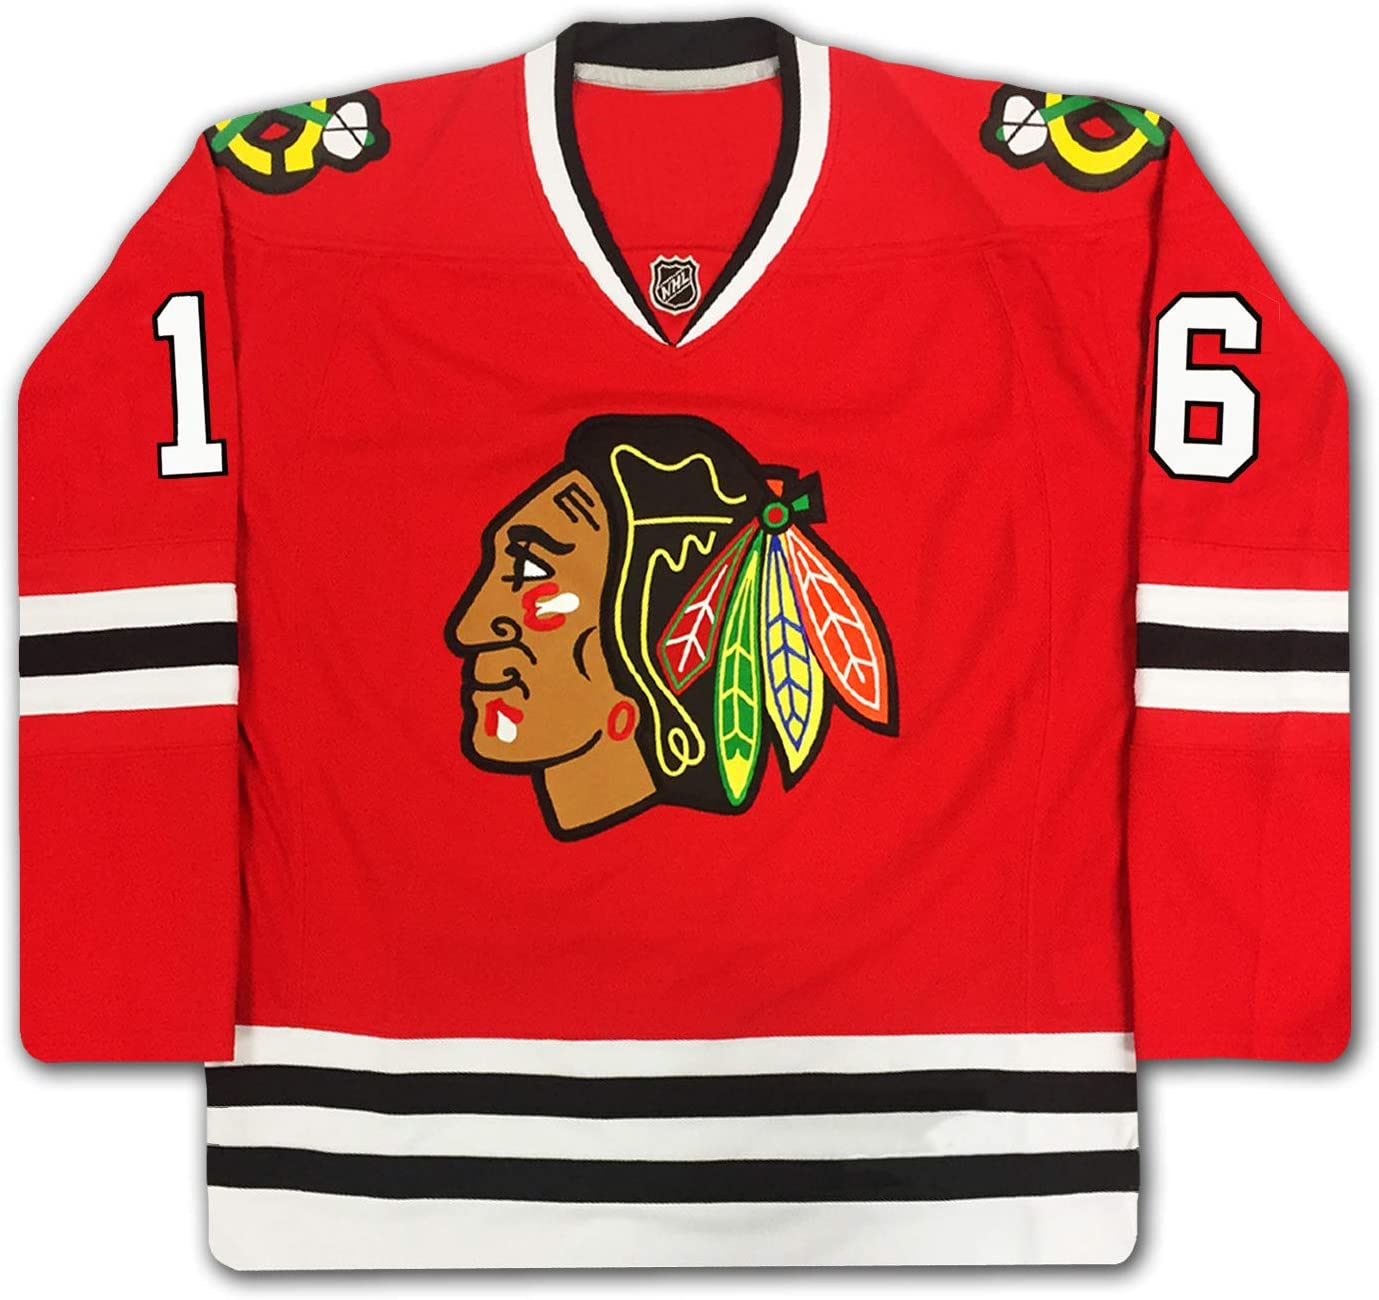 Bobby Hull Number 16 Signed Red Chicago Blackhawks Jersey at ...